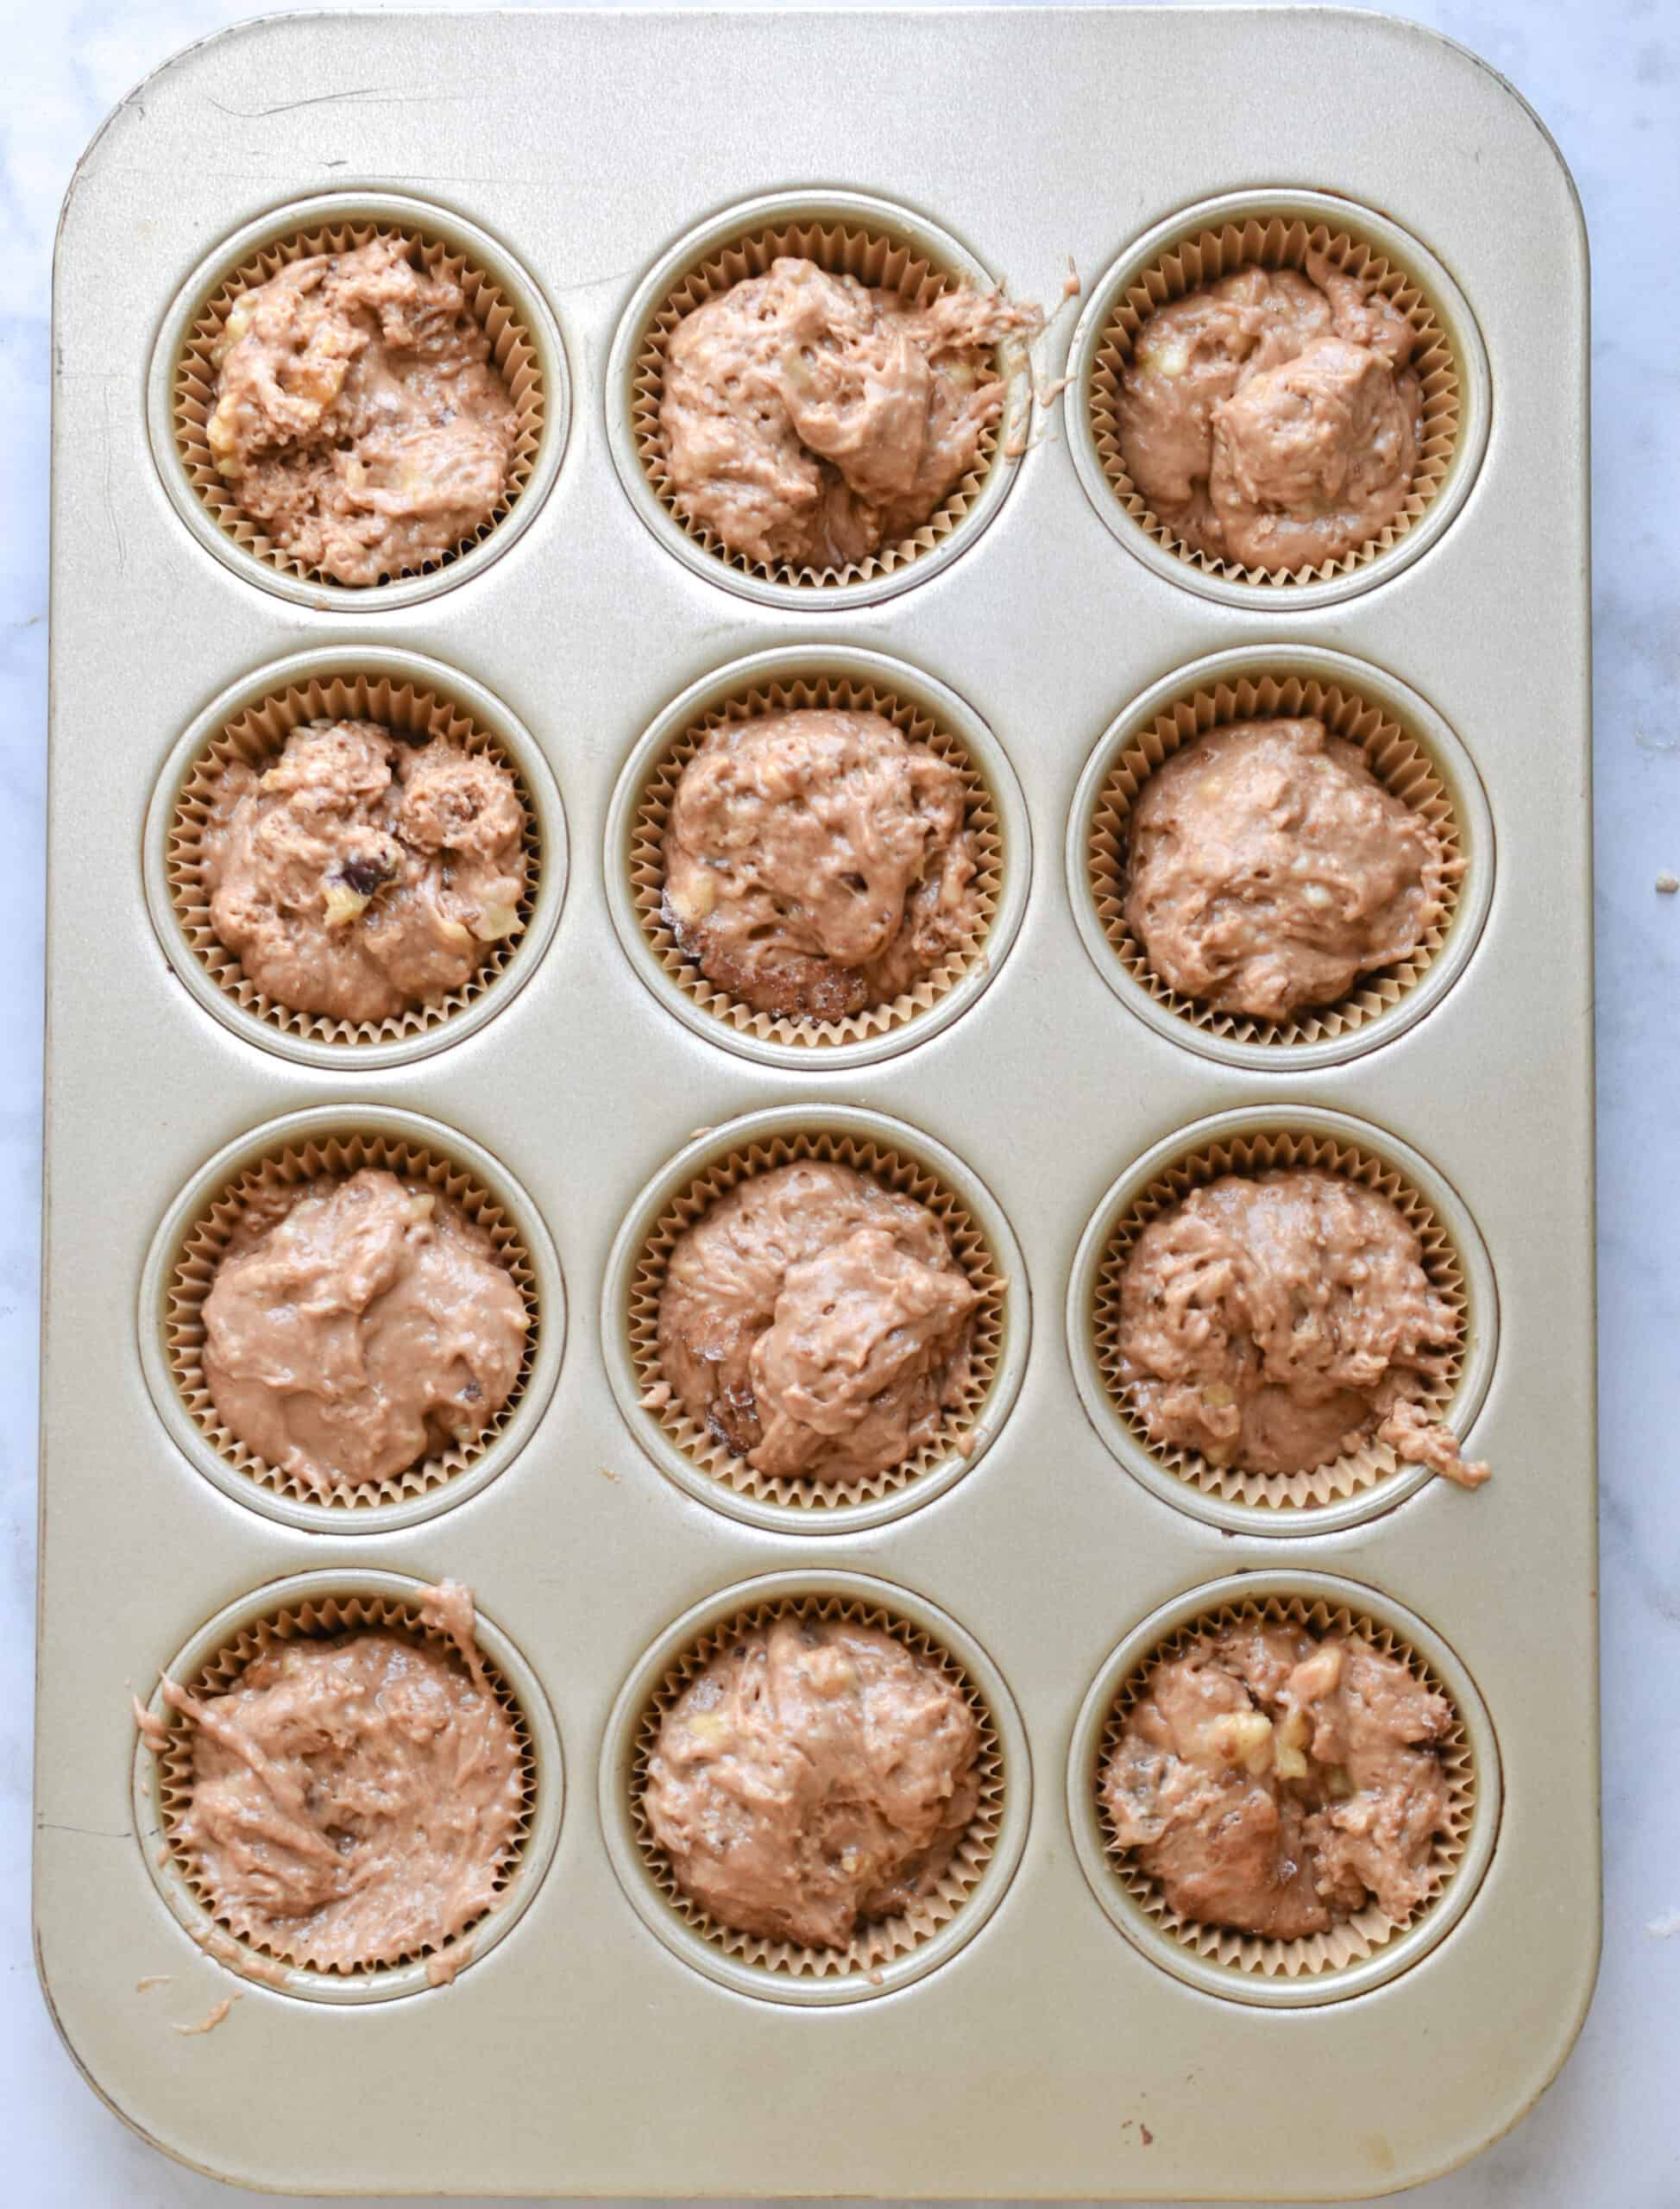 Fill the muffin tins with the batter